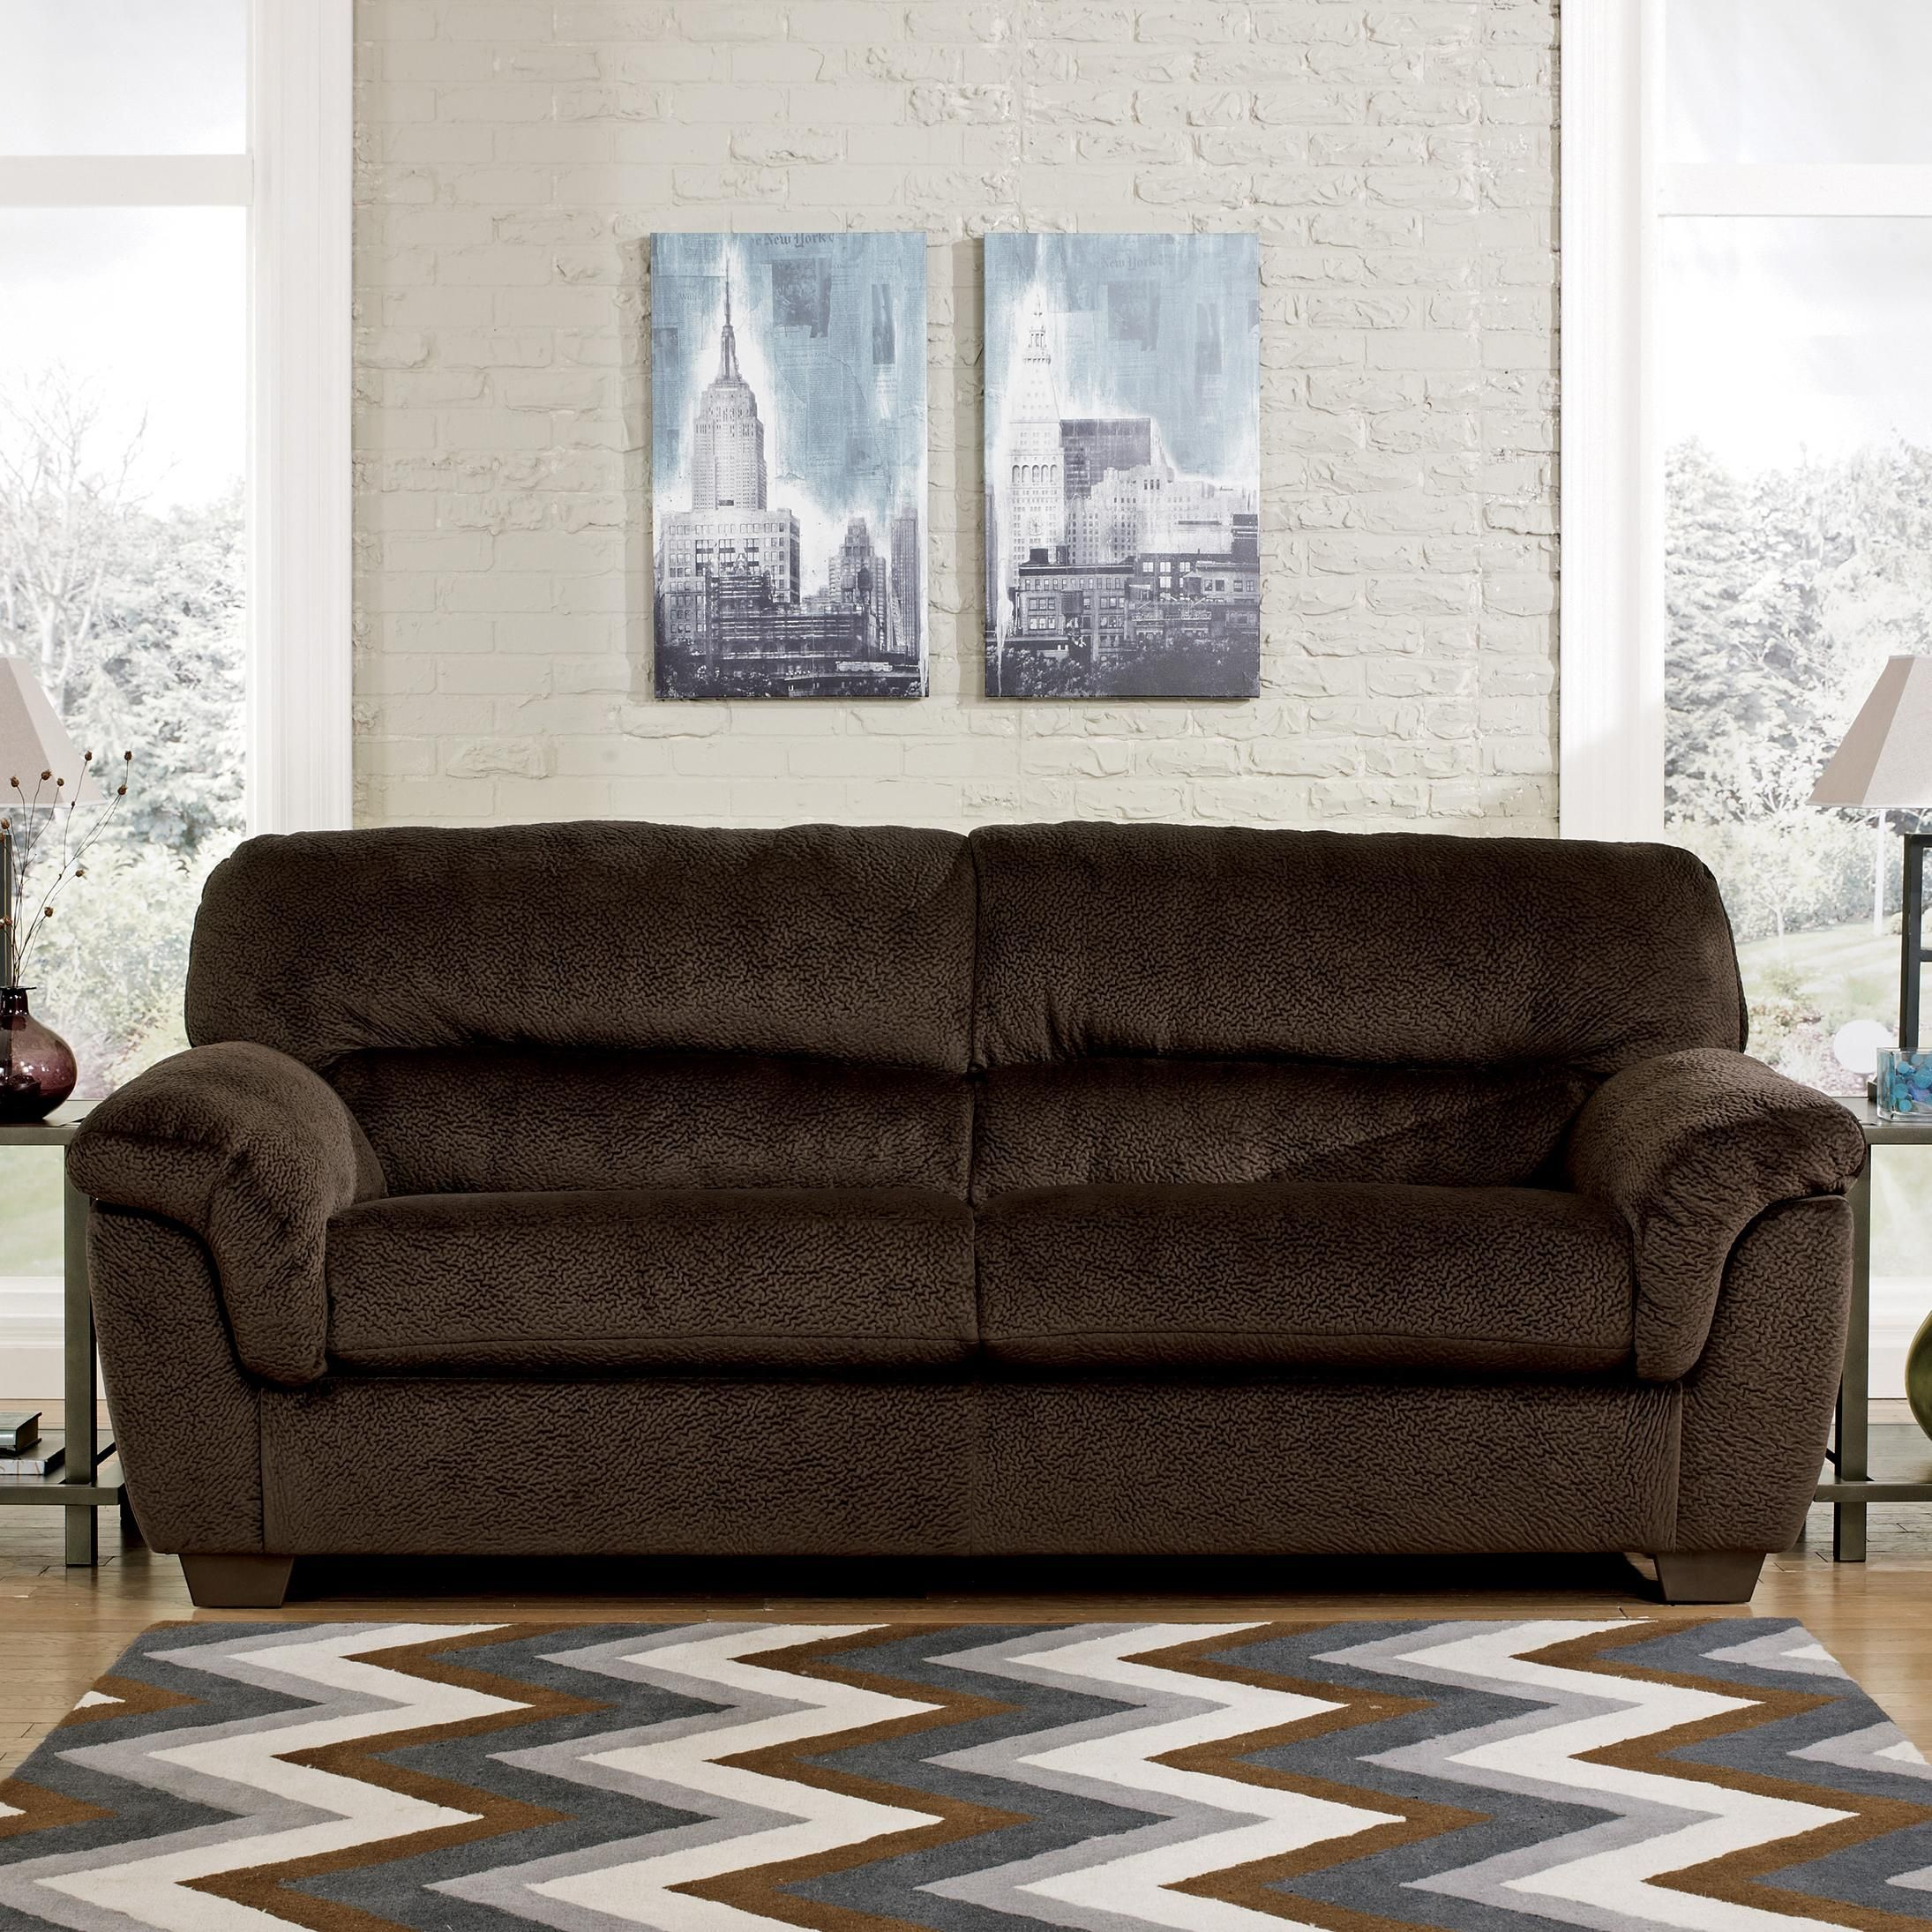 Charmant Coral Pike   Chocolate Sofa By Ashley $399 At SamsFurniture.com. Champion  Fabric Is SO Snuggly, Soft And Fun. The Perfect Addition For Every Home!